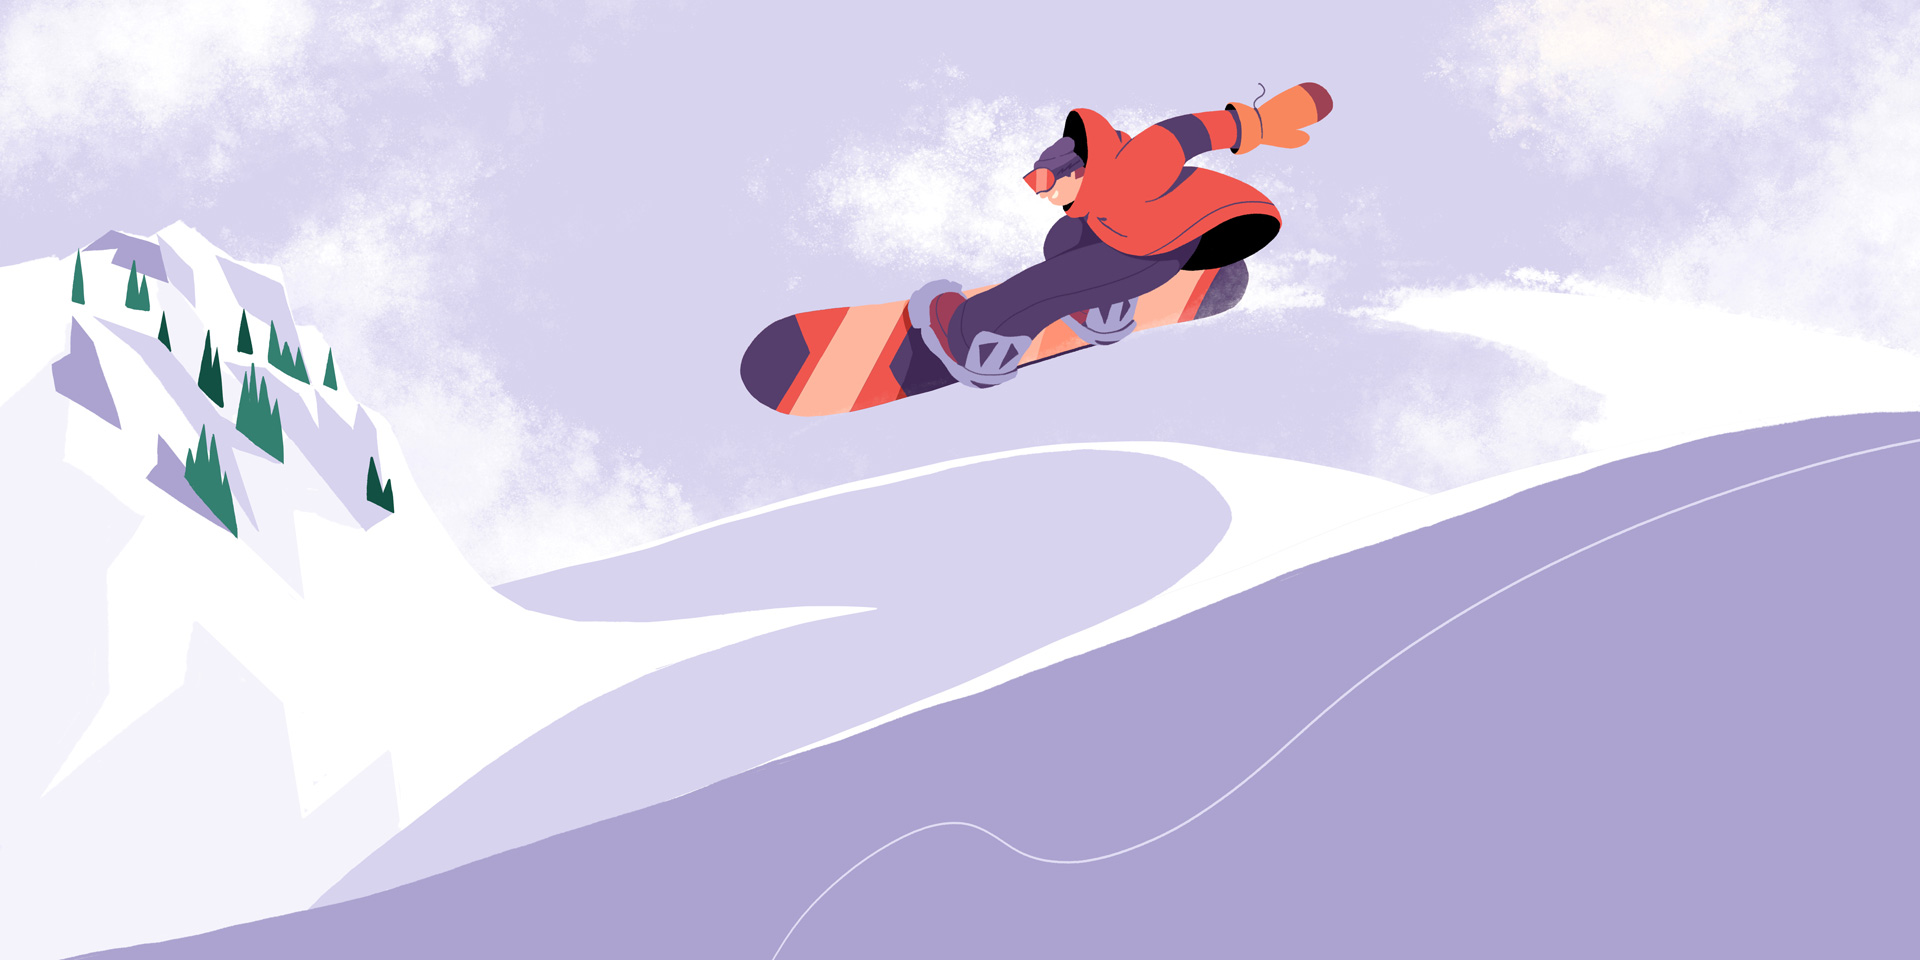 Illustration of a snowboarder jumping